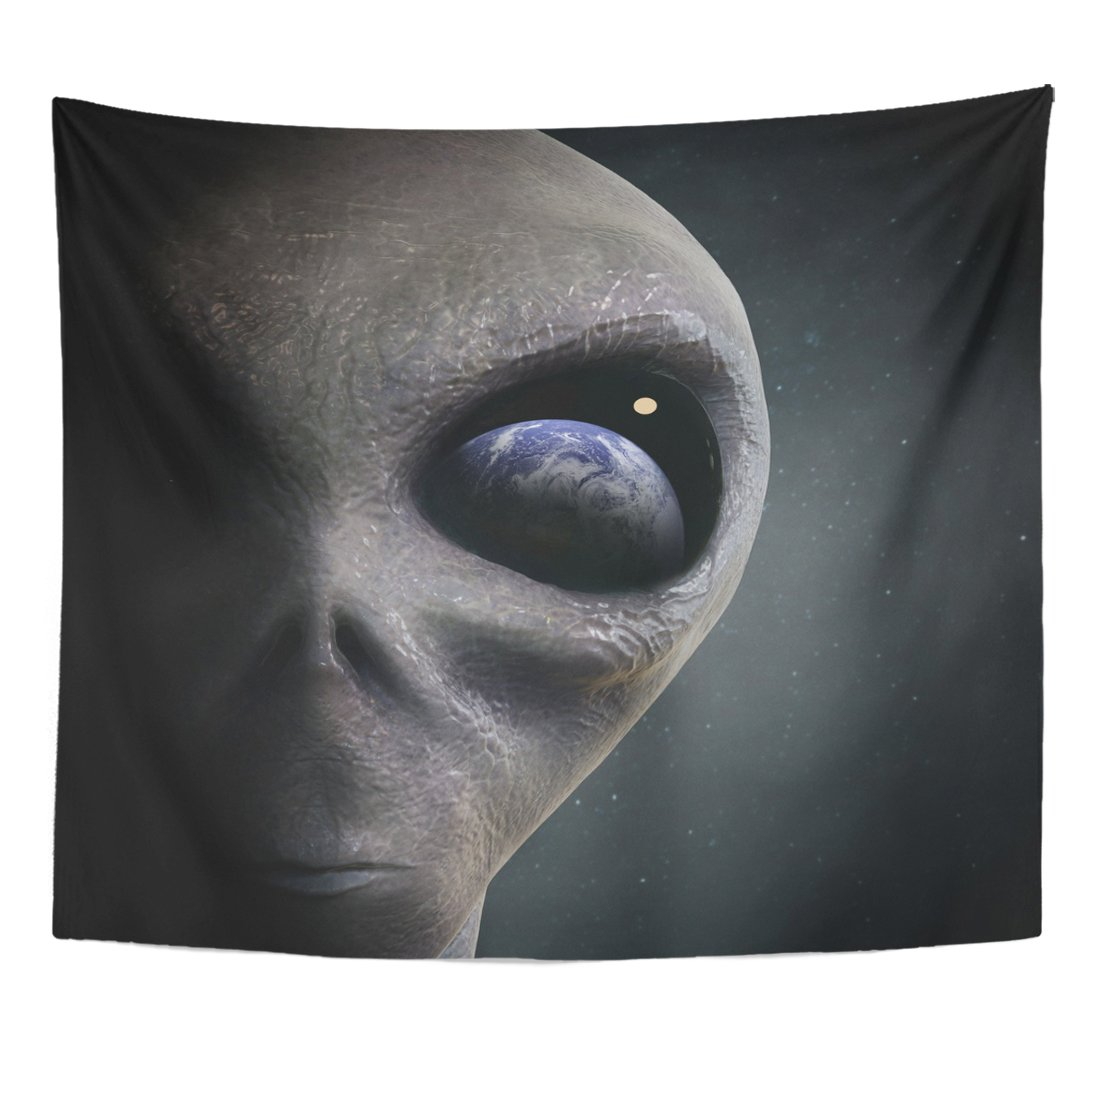 VaryHome Tapestry Blue Ufo Alien Looking at the Earth Gray Invasion Paranormal Home Decor Wall Hanging for Living Room Bedroom Dorm 50x60 Inches